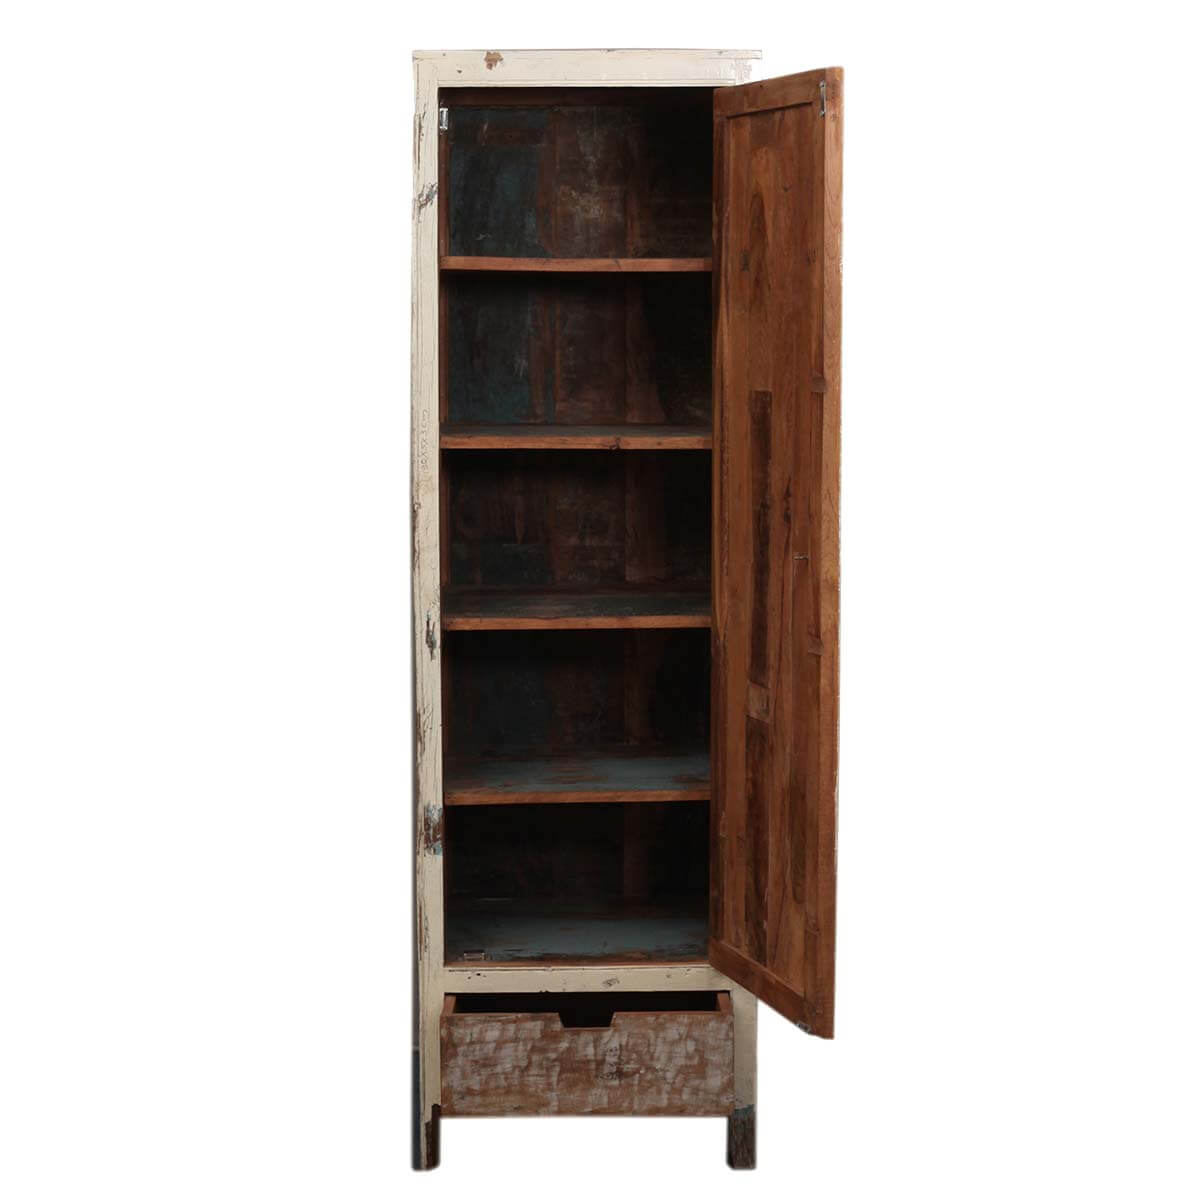 Superb img of  Distressed Reclaimed Wood Bottom Drawer Storage Cabinet Armoire with #B48317 color and 1200x1200 pixels